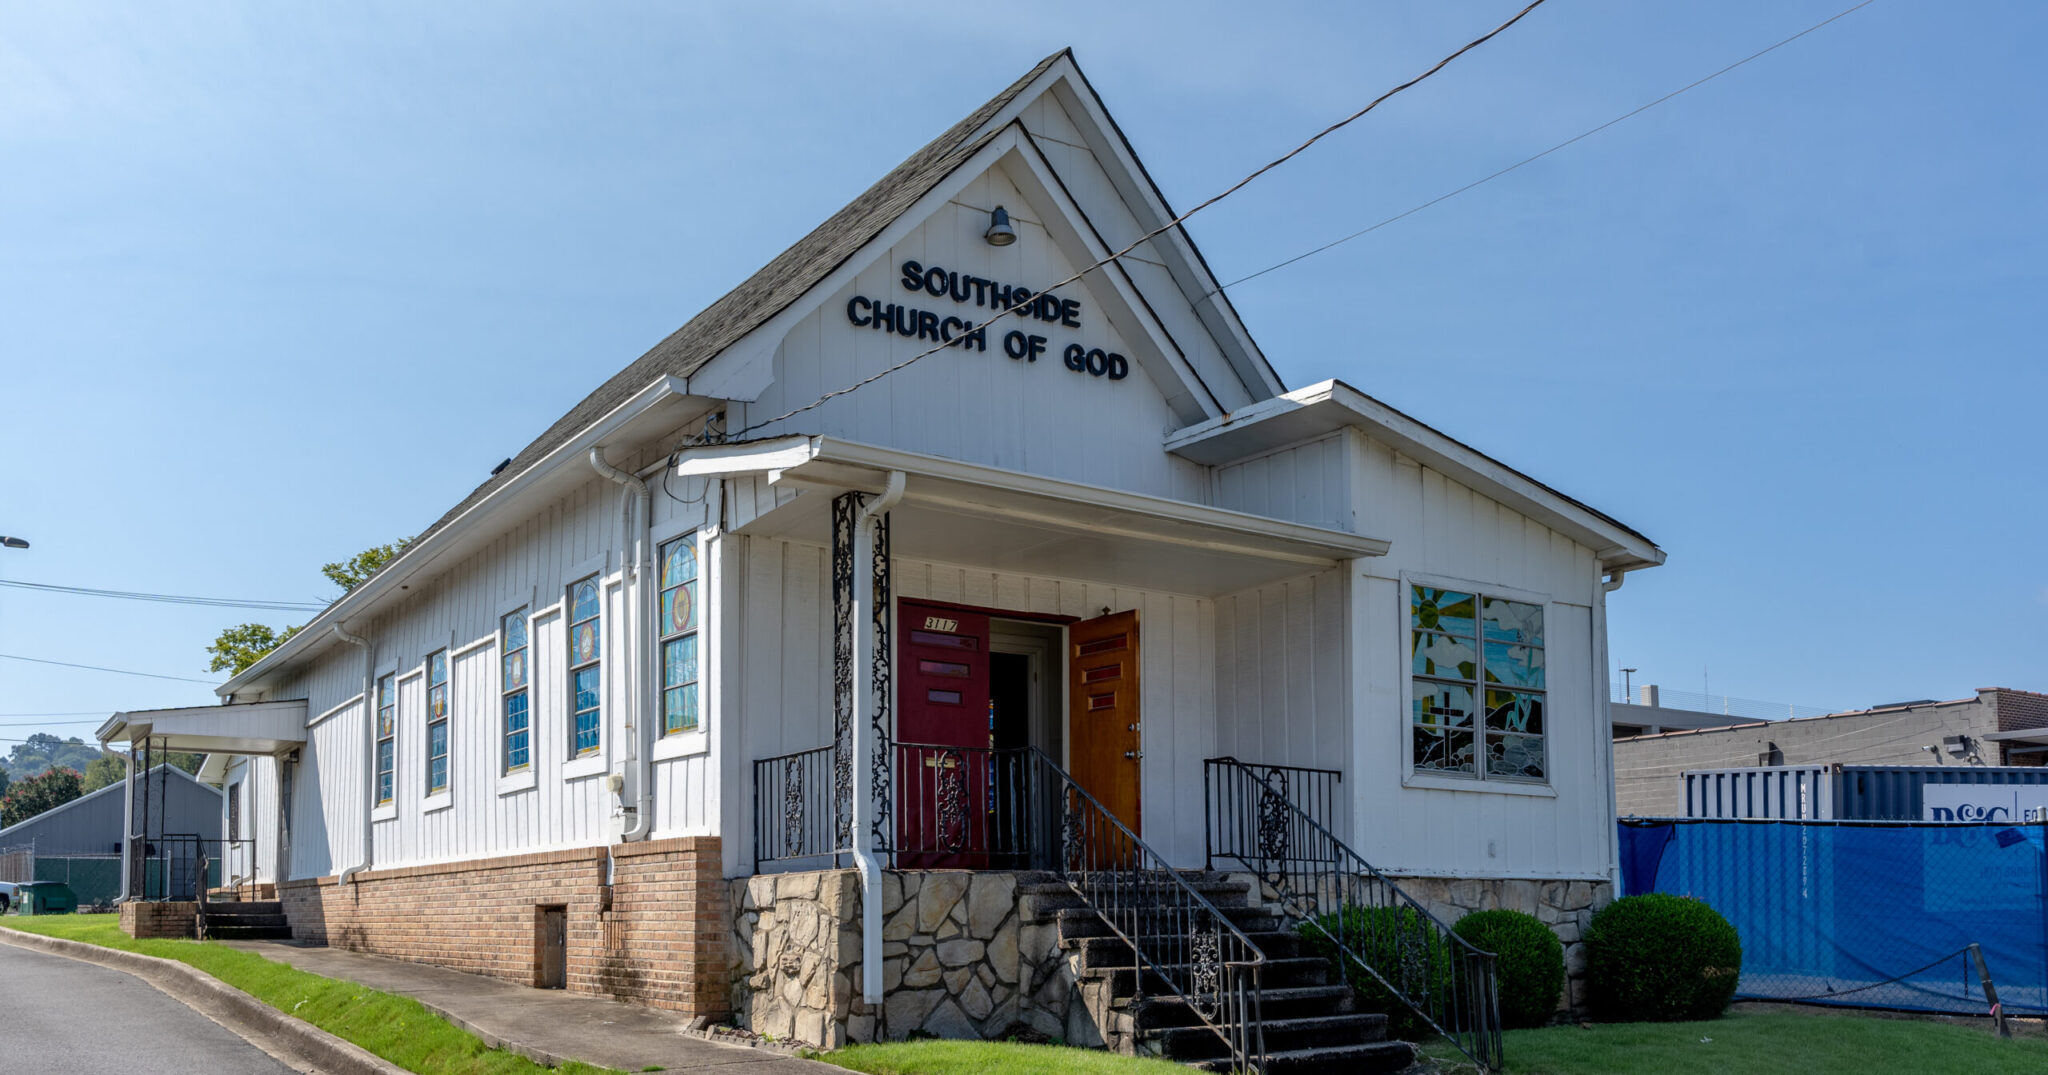 Southside Church of God in Lakeview gets new owners, new life